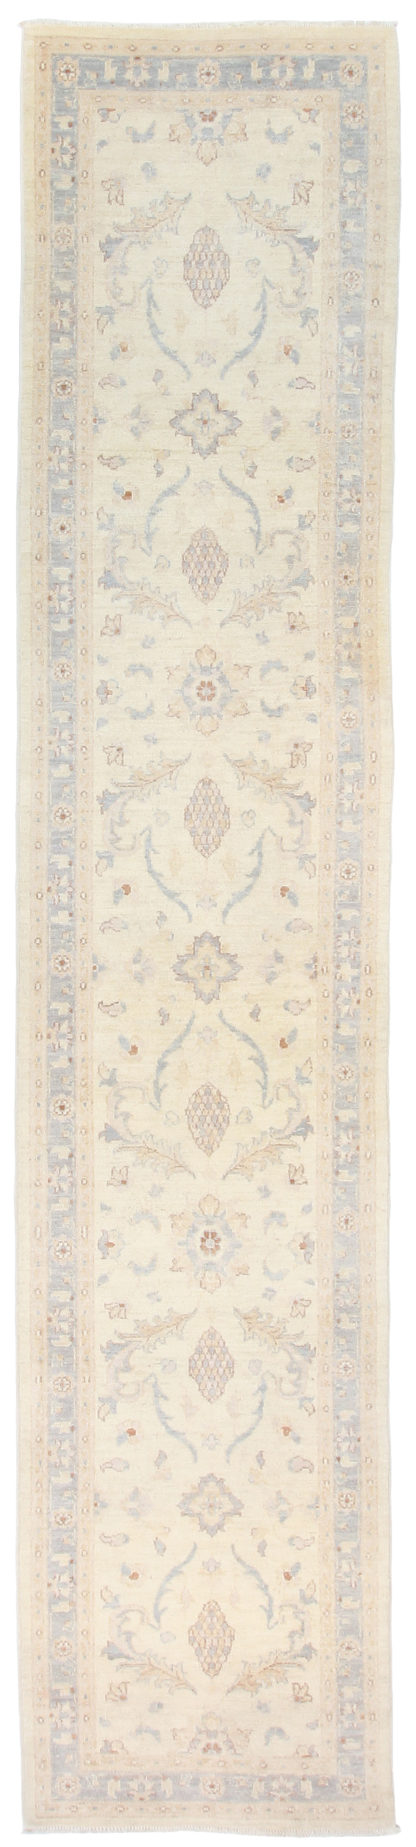 Hand Knotted Wool Runner 3x12 Ivory Light Blue Area Rug